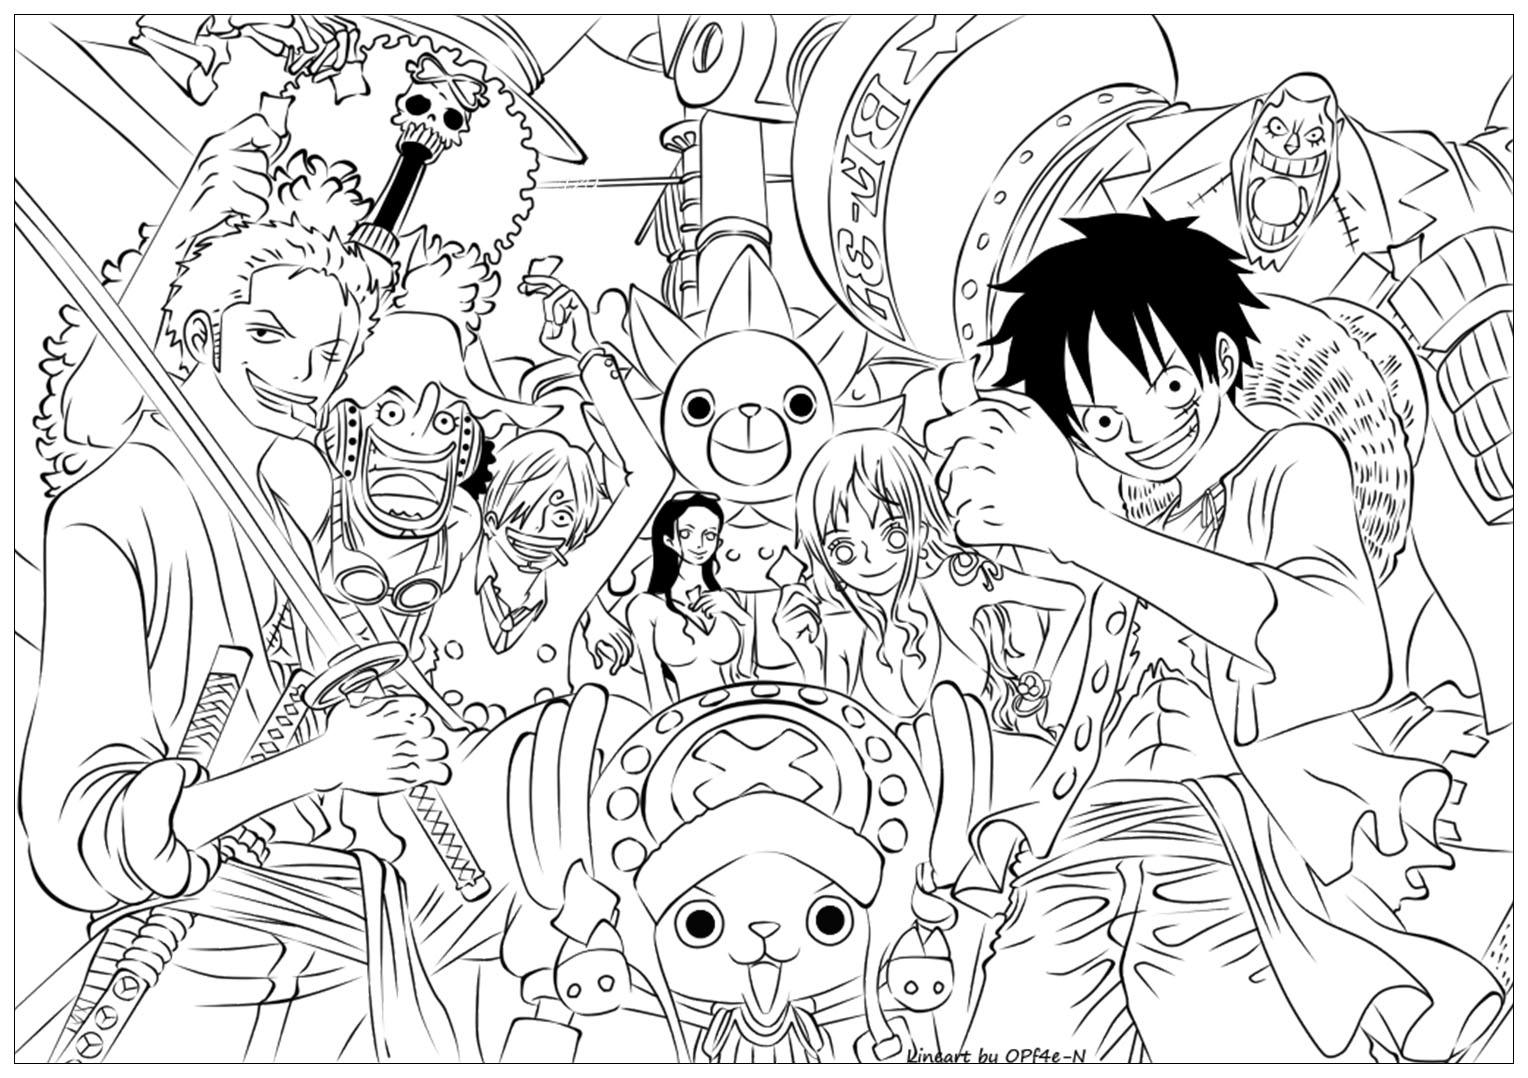 Dessin de One piece à colorier, facile pour enfants